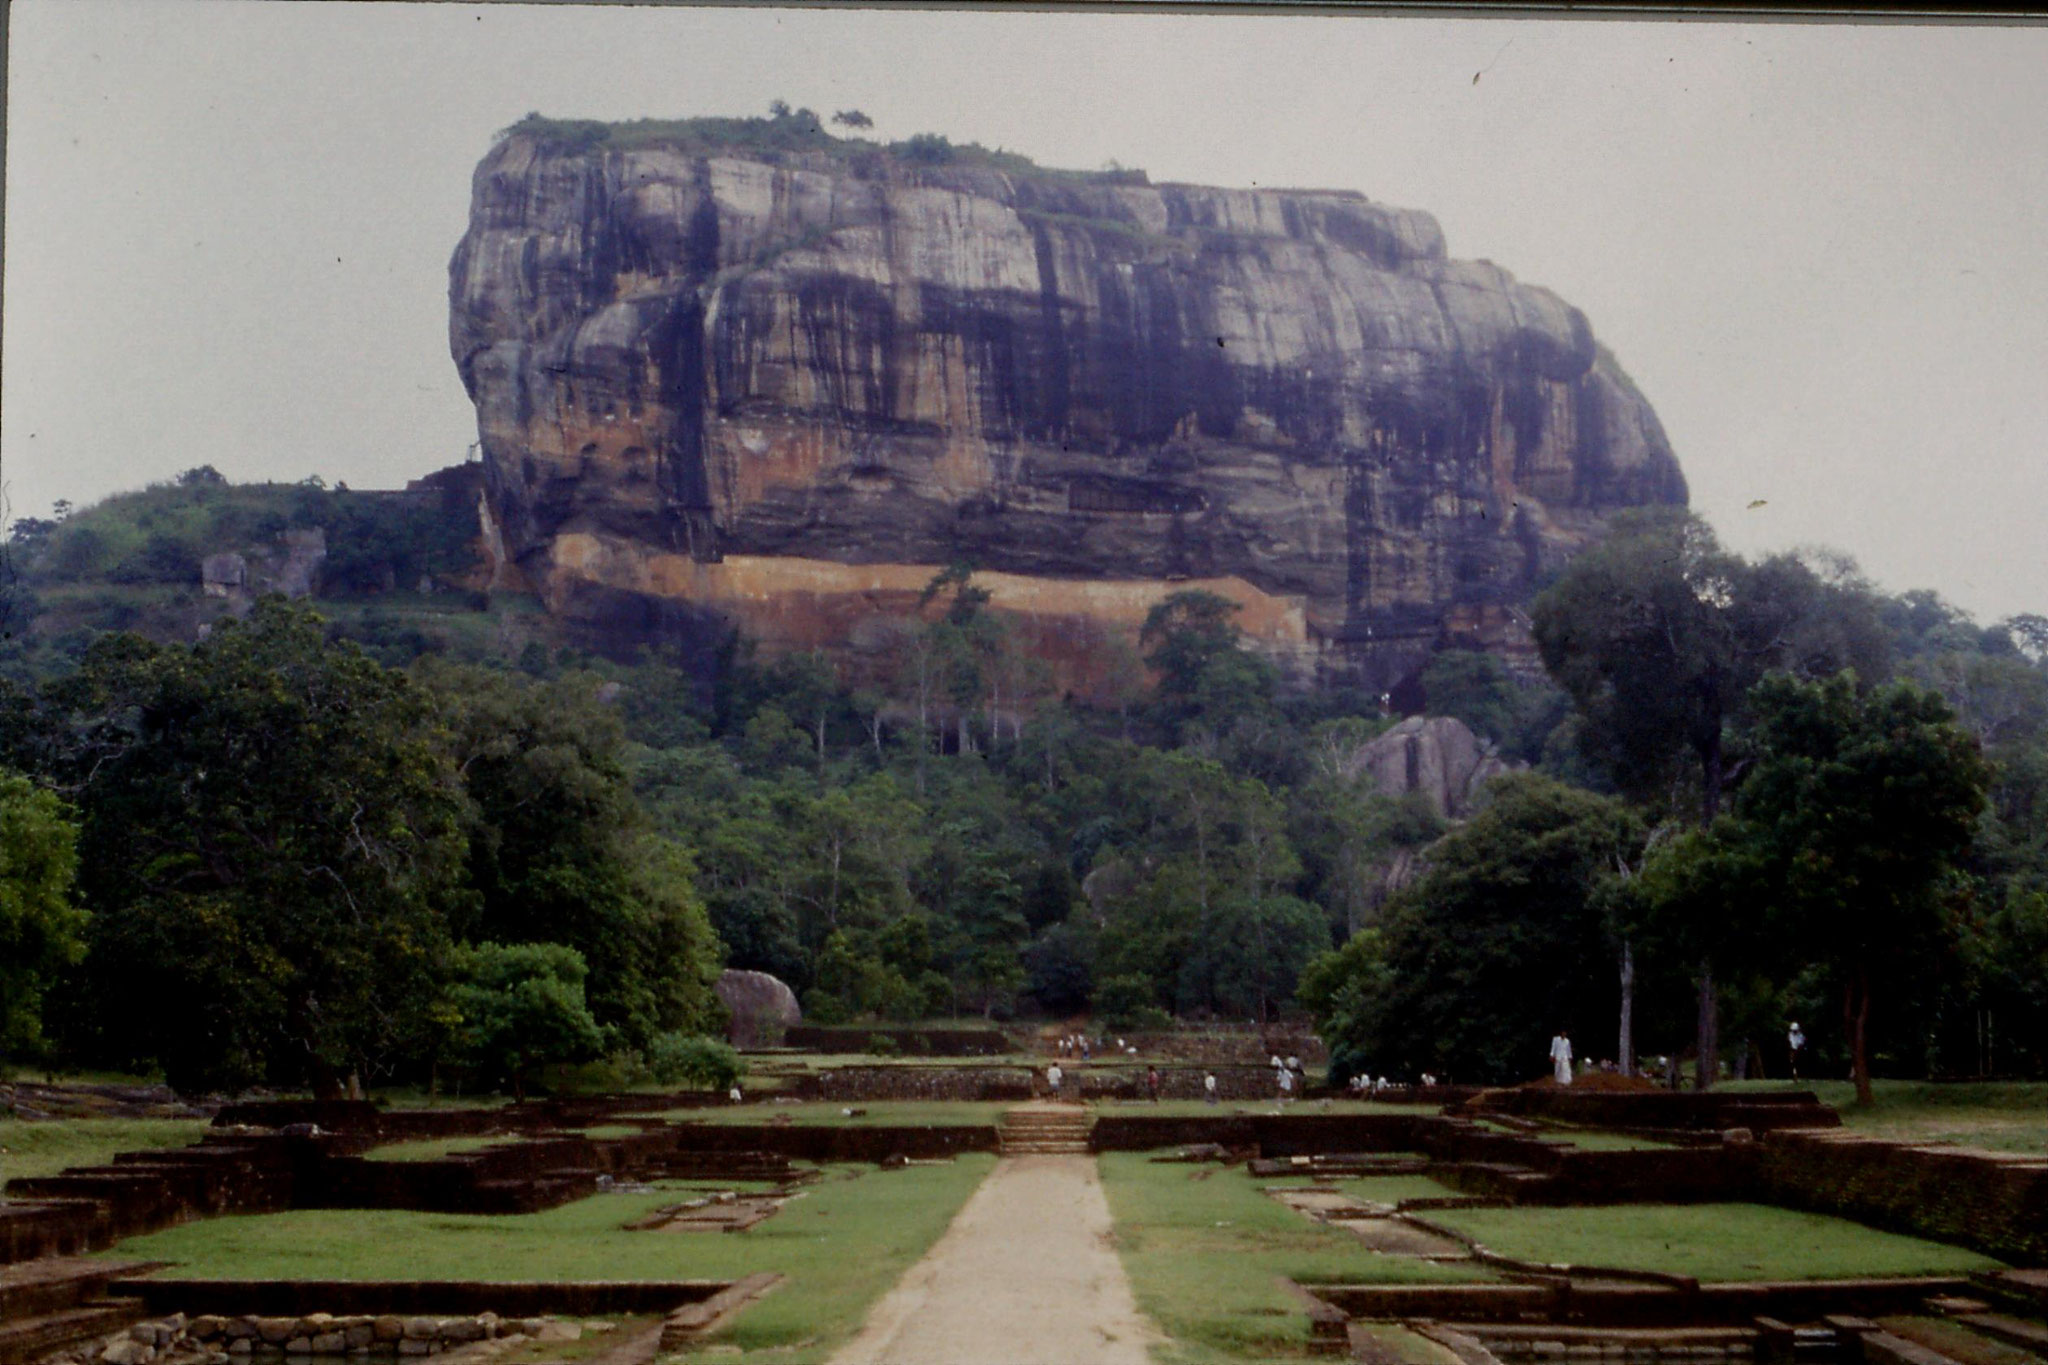 7/2/1990: 31: Sigiriya rock and summer palace gardens